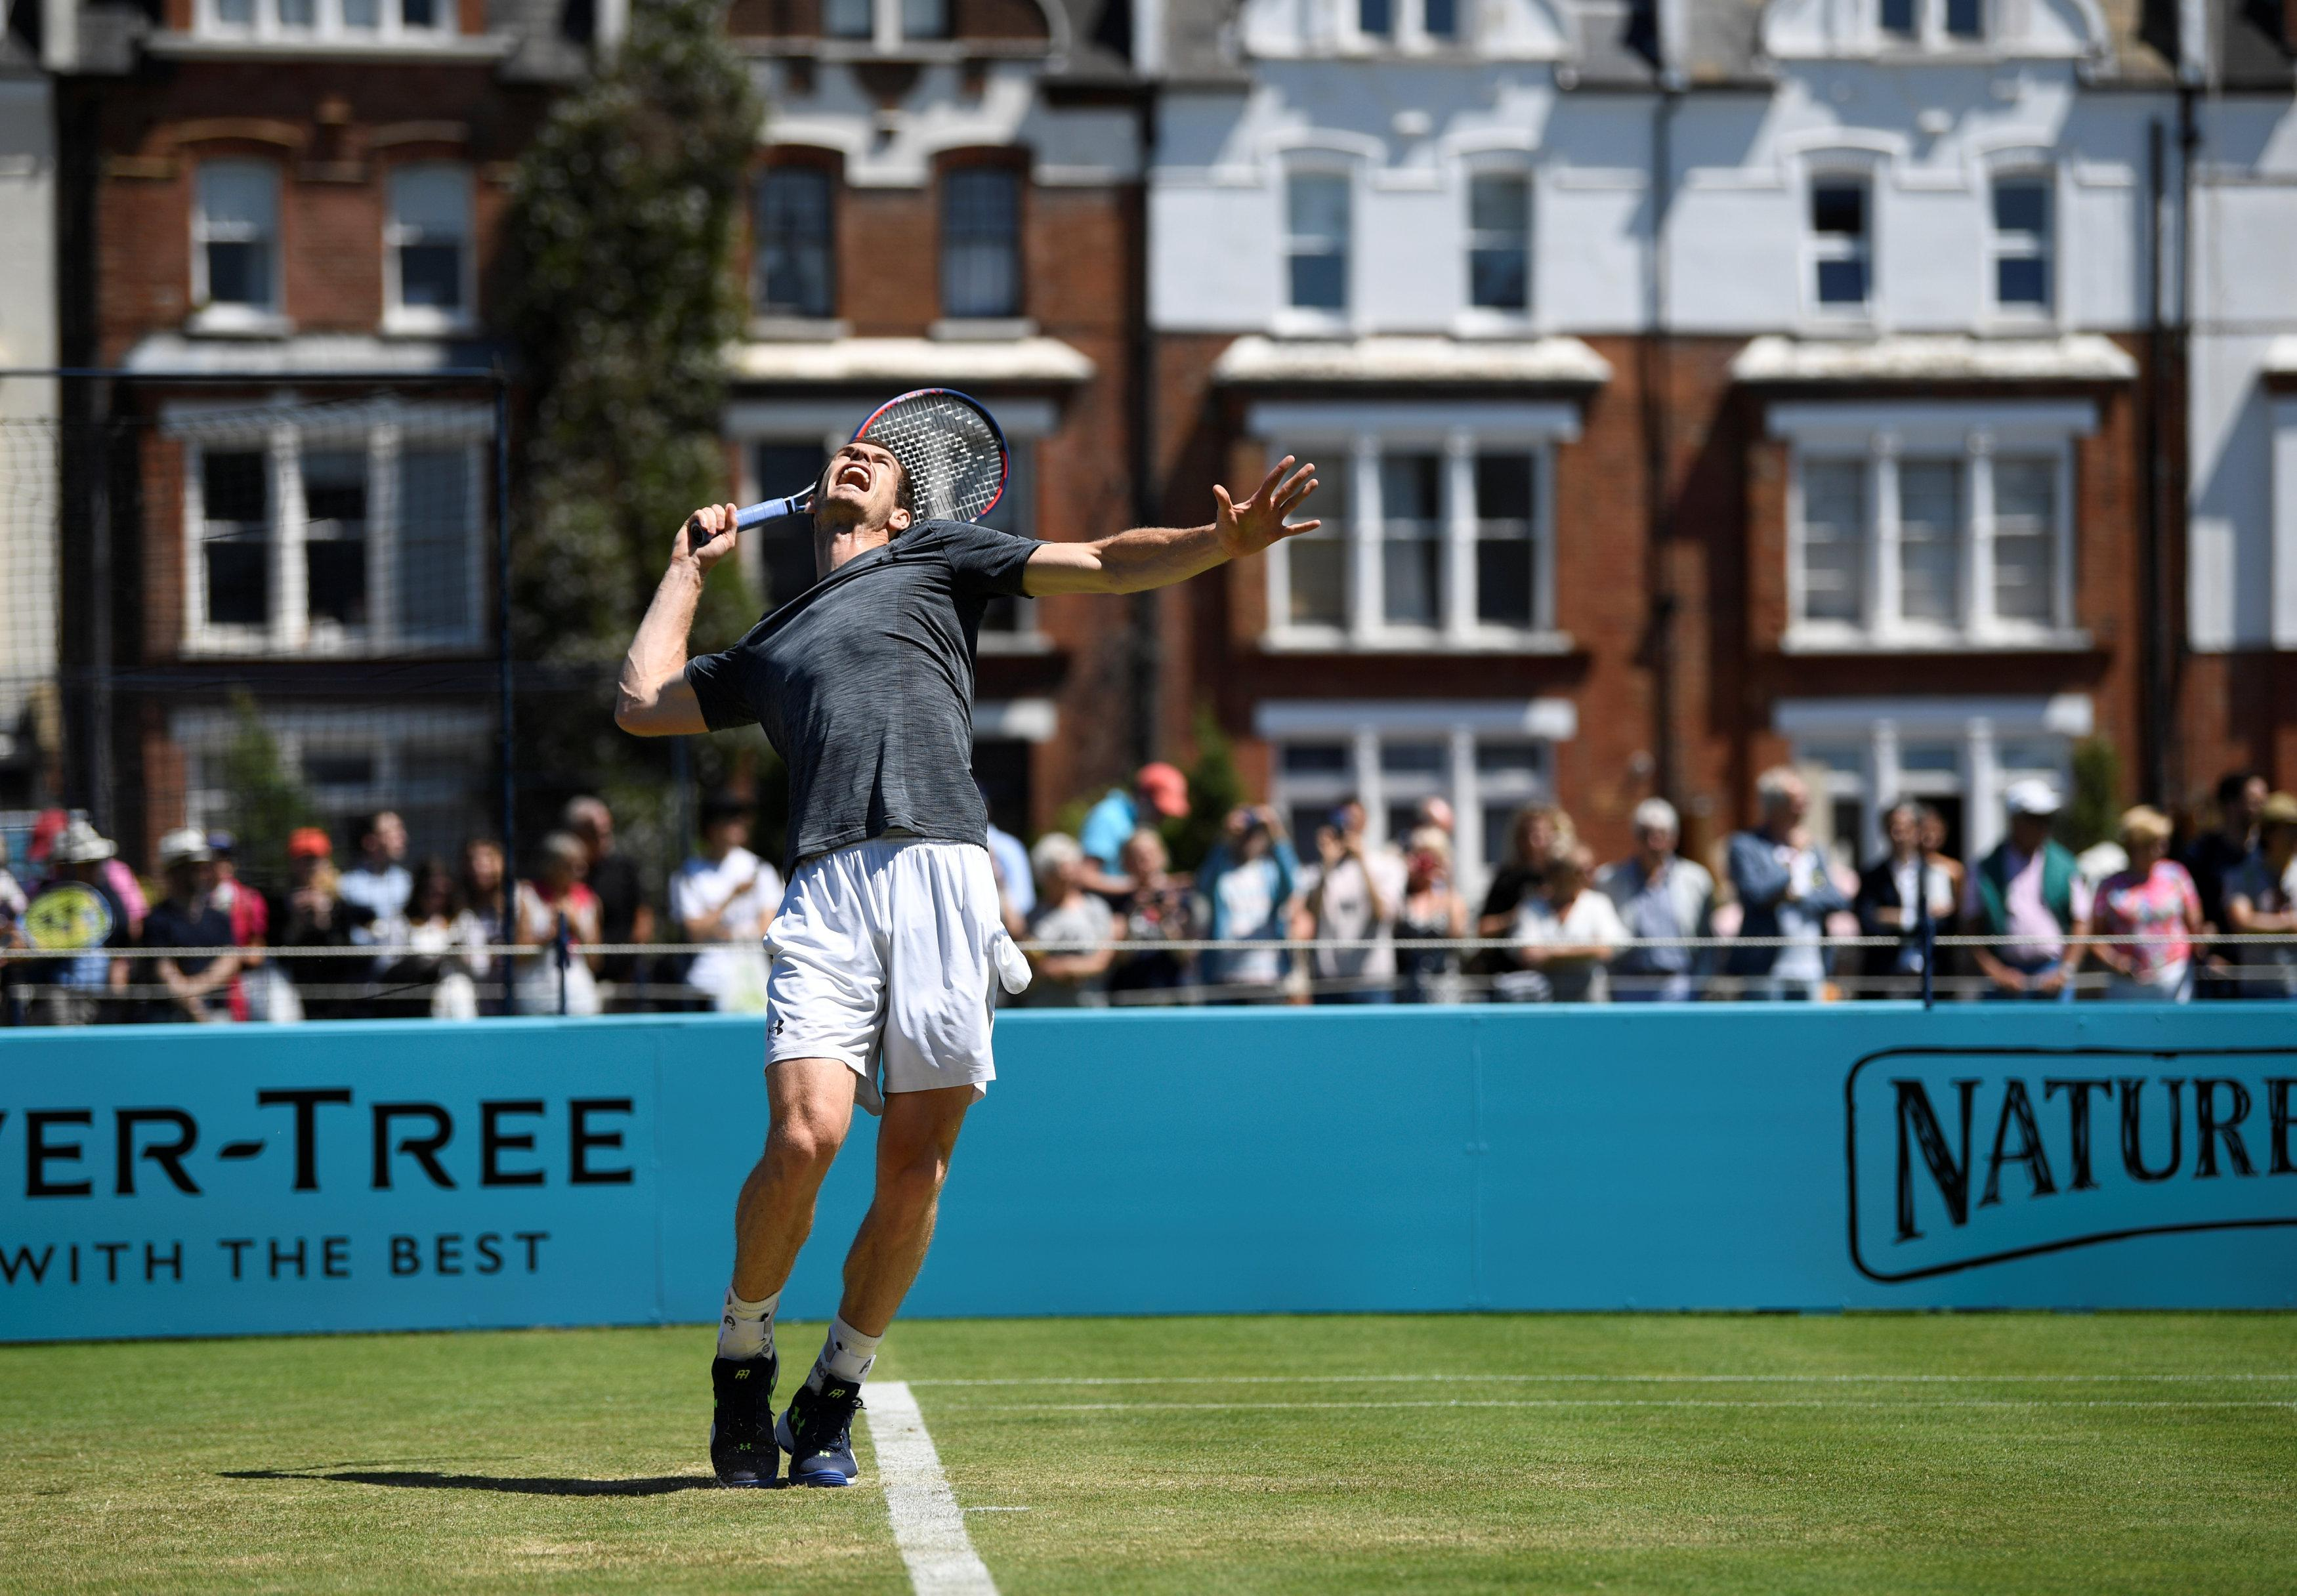 Andy Murray will feature at the Fever-Tree Championships this week